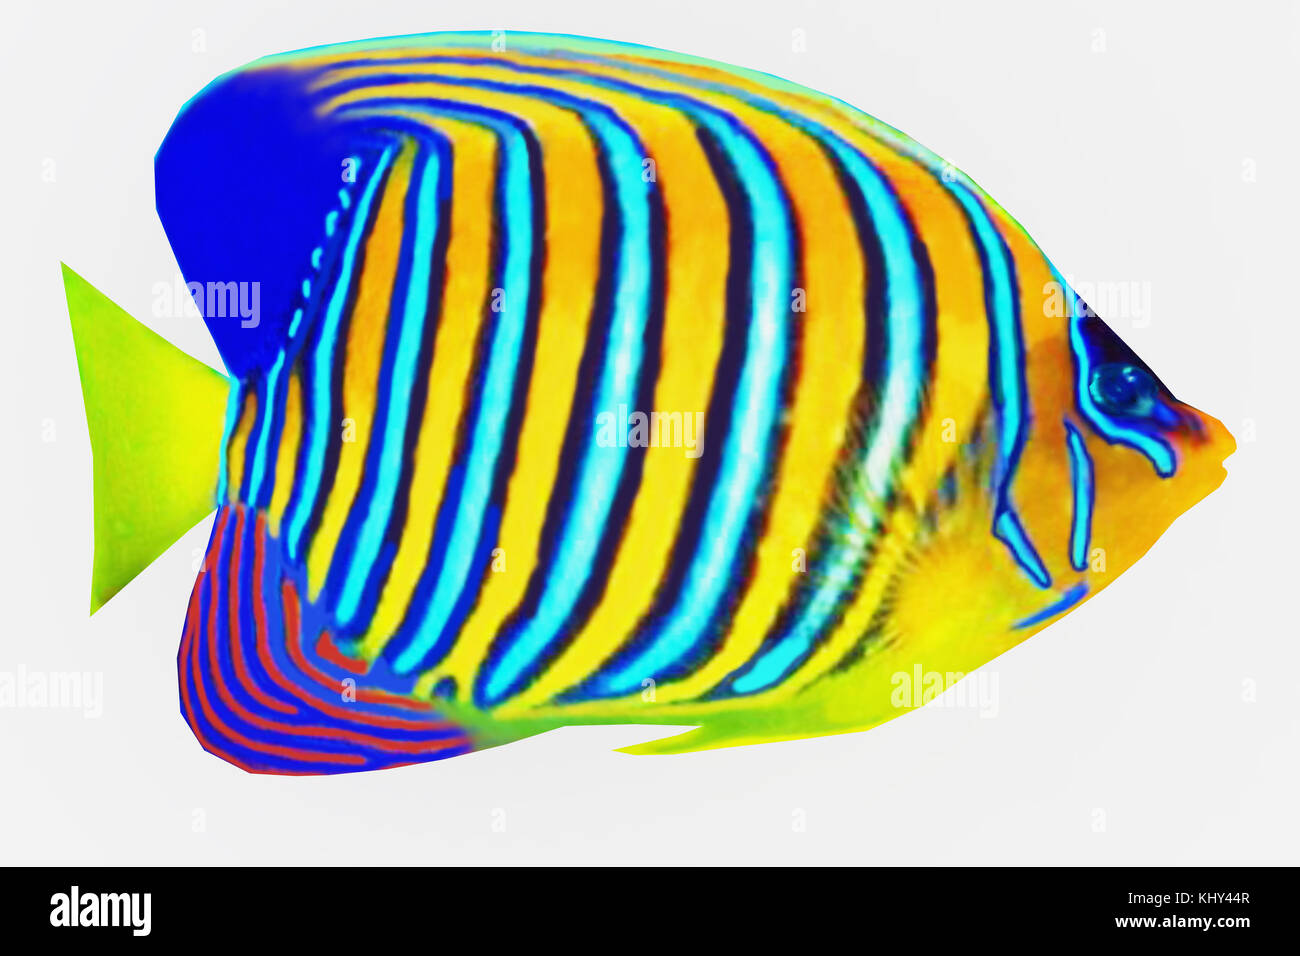 Regal Angelfish - The Regal Angelfish is a saltwater species reef fish in tropical regions of Indo-Pacific oceans. - Stock Image